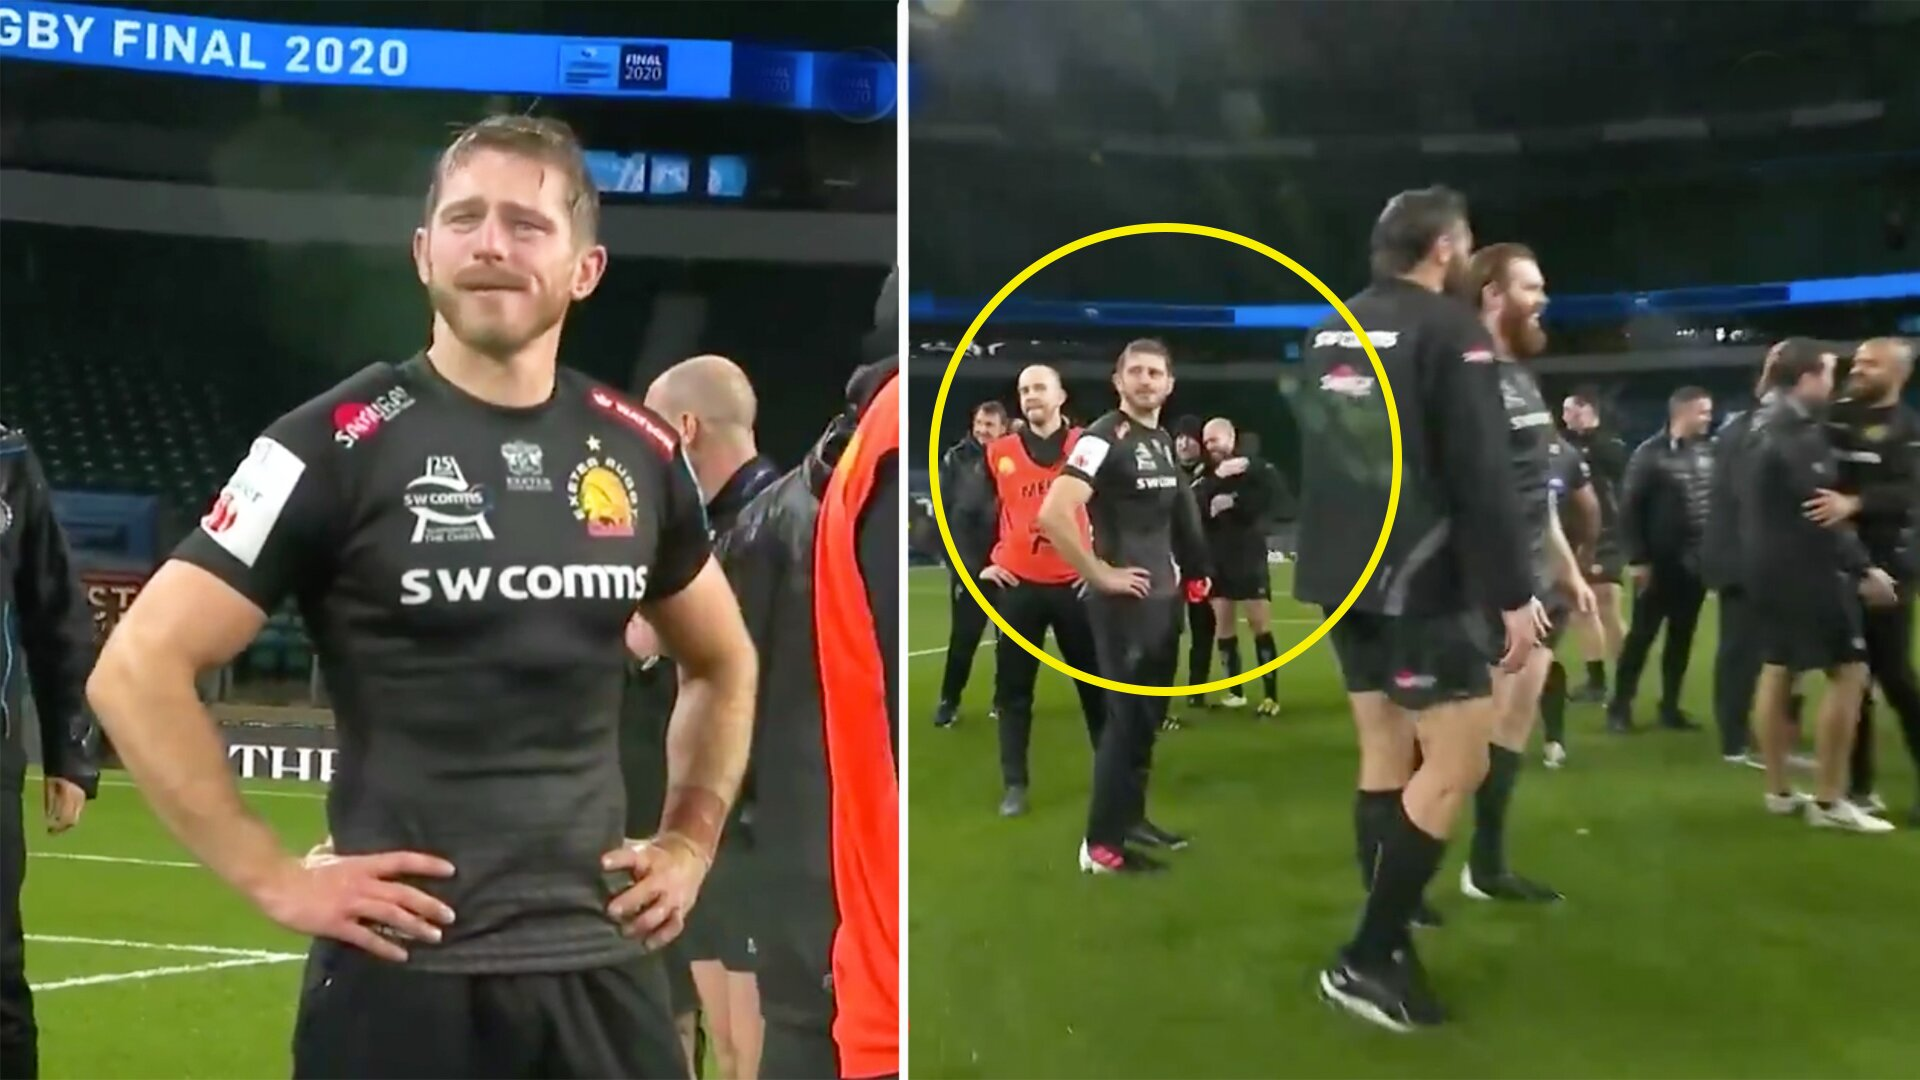 Harrowing footage emerges of Exeter legend Gareth Steenson in aftermath of Premiership triumph